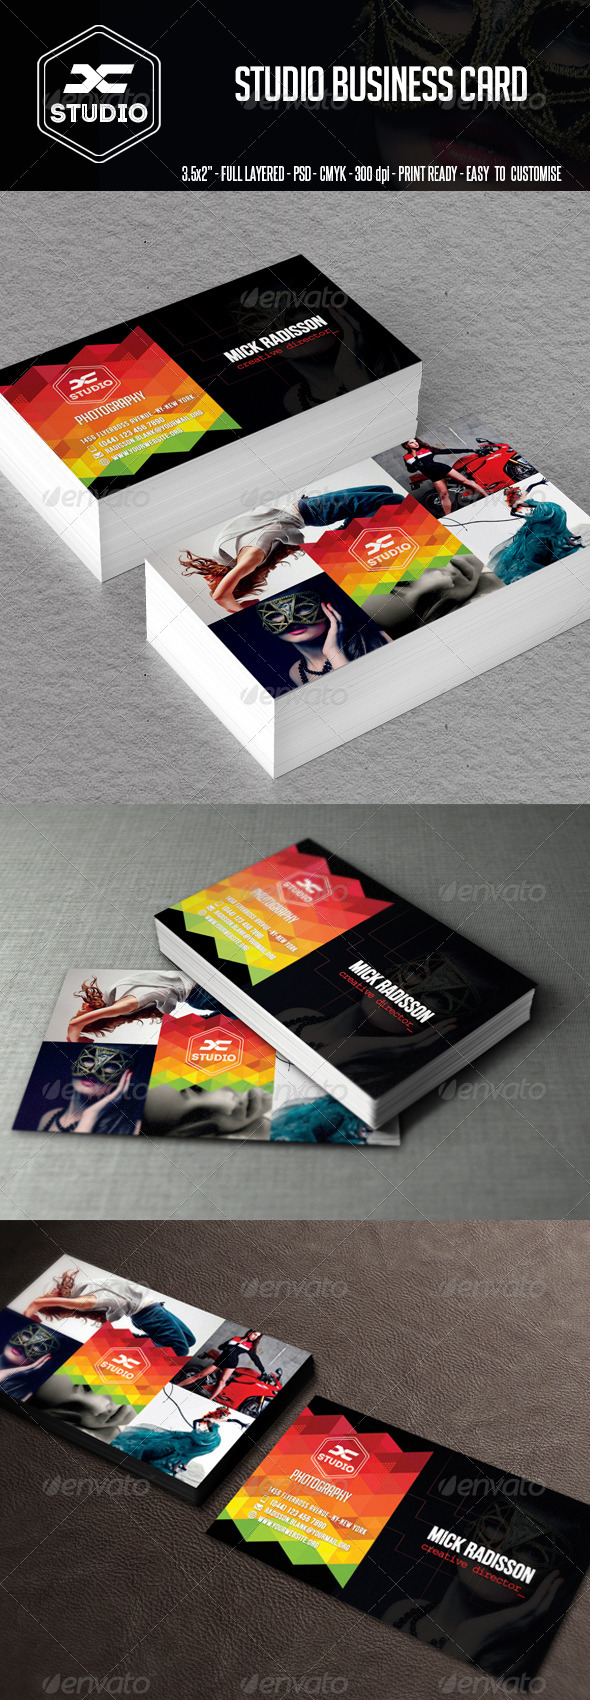 GraphicRiver Studio Business Card 7922097